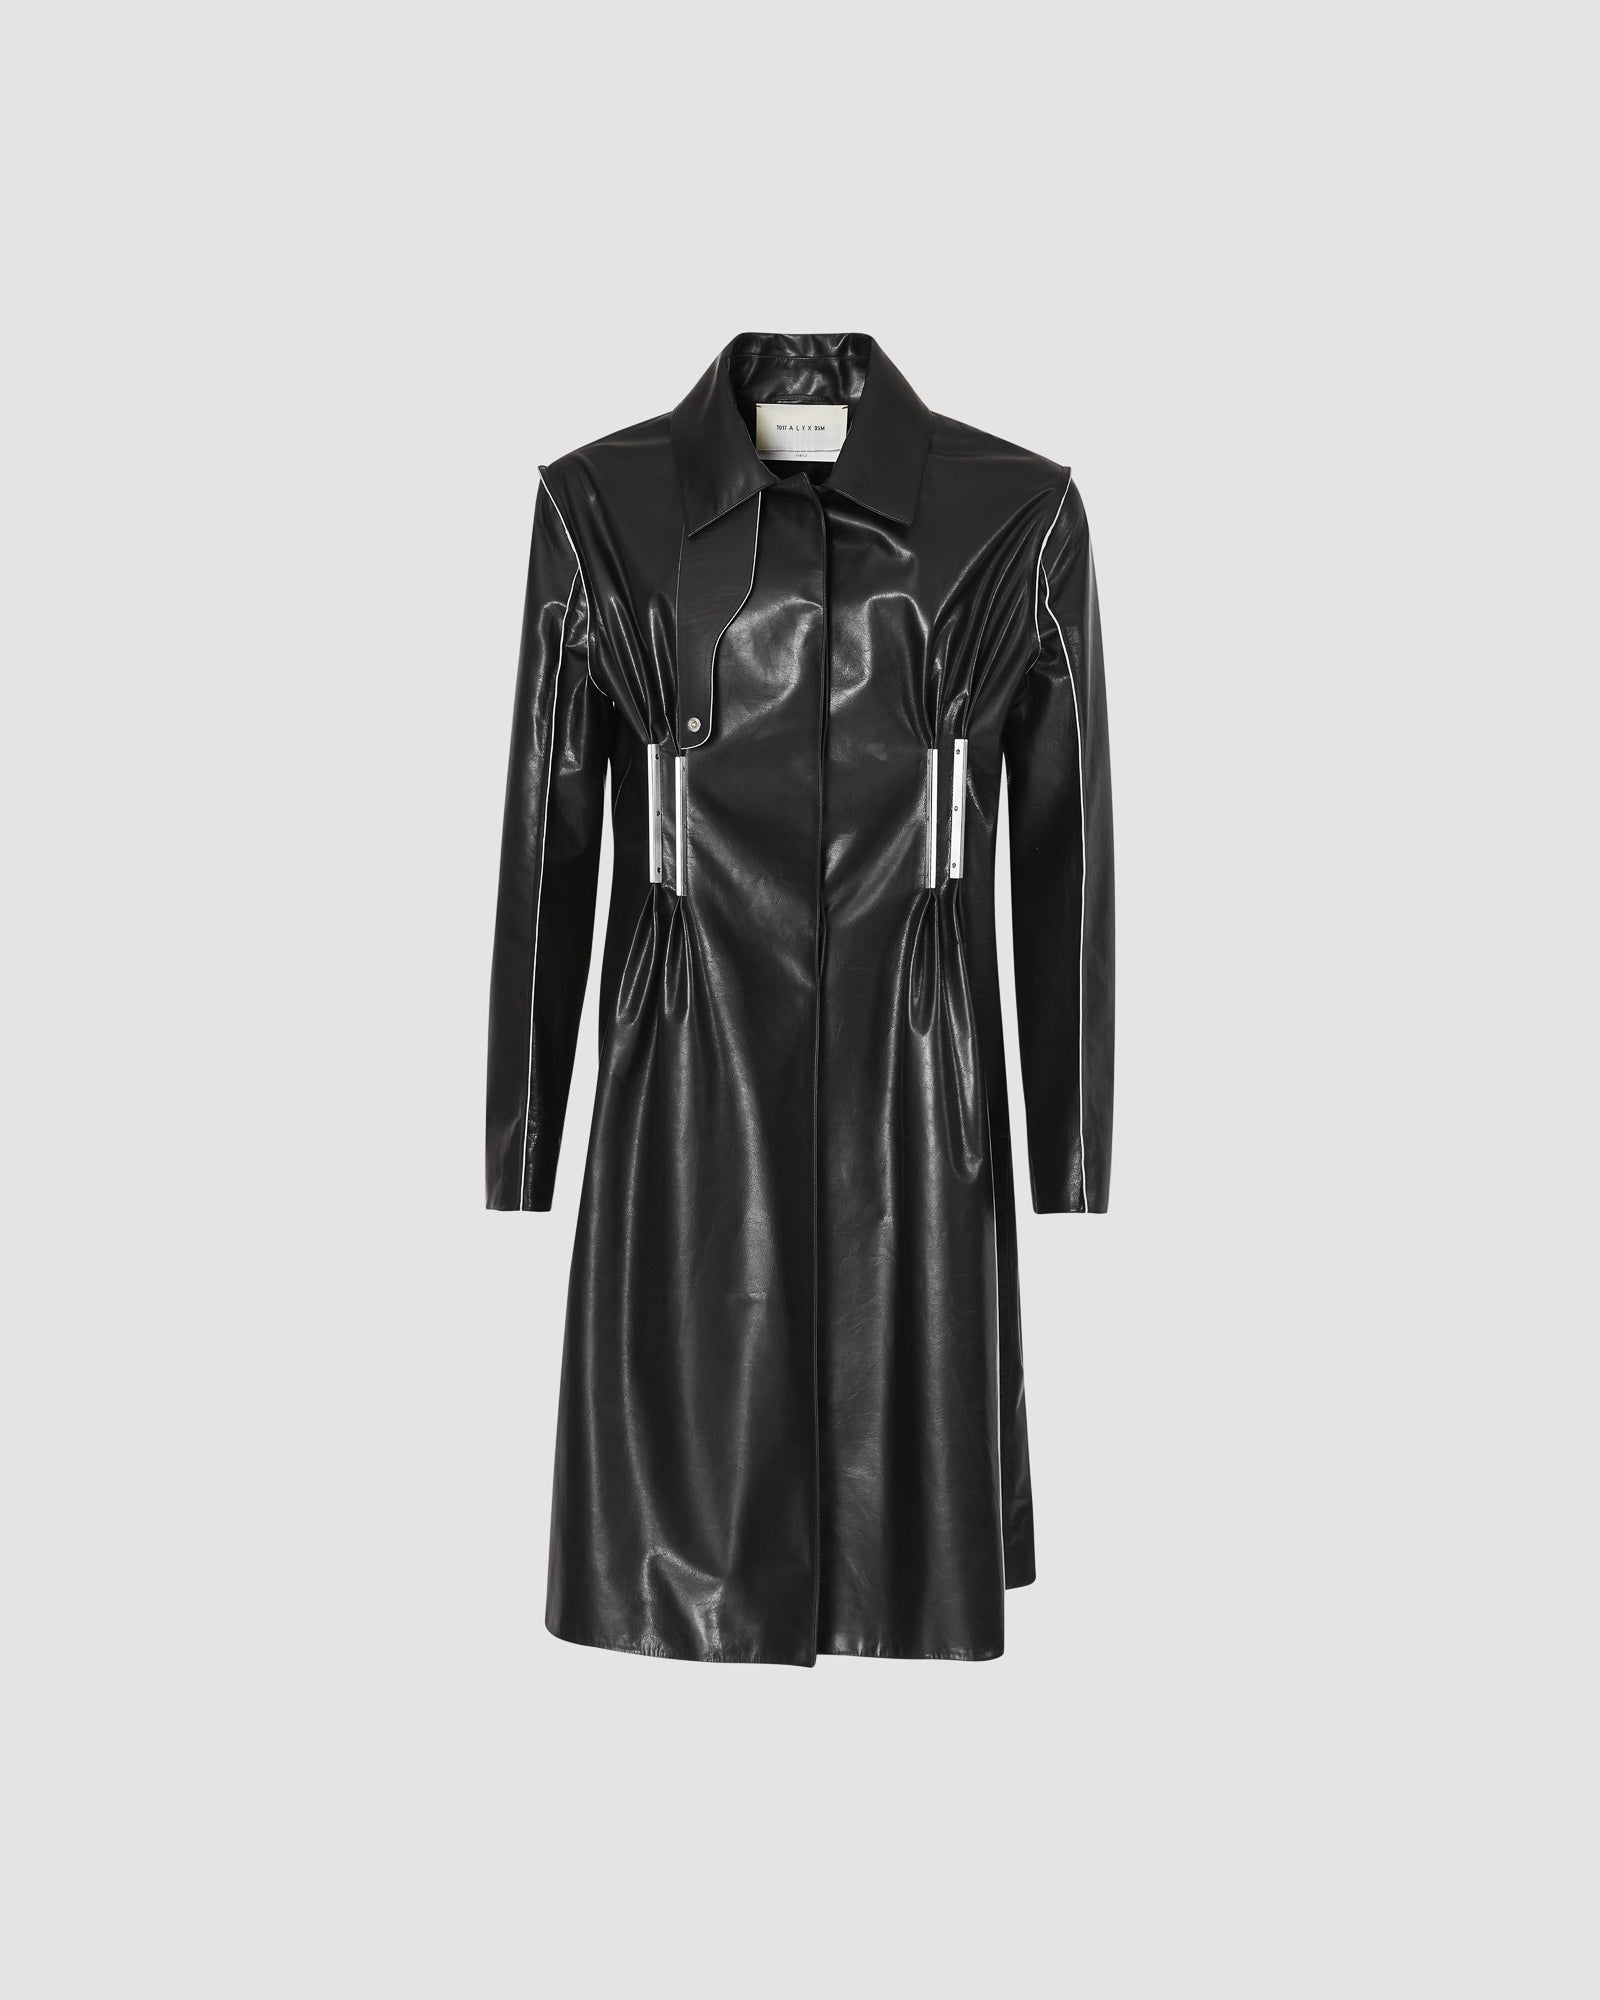 LEATHER DOUBLE METAL BAR COAT PRE-ORDER